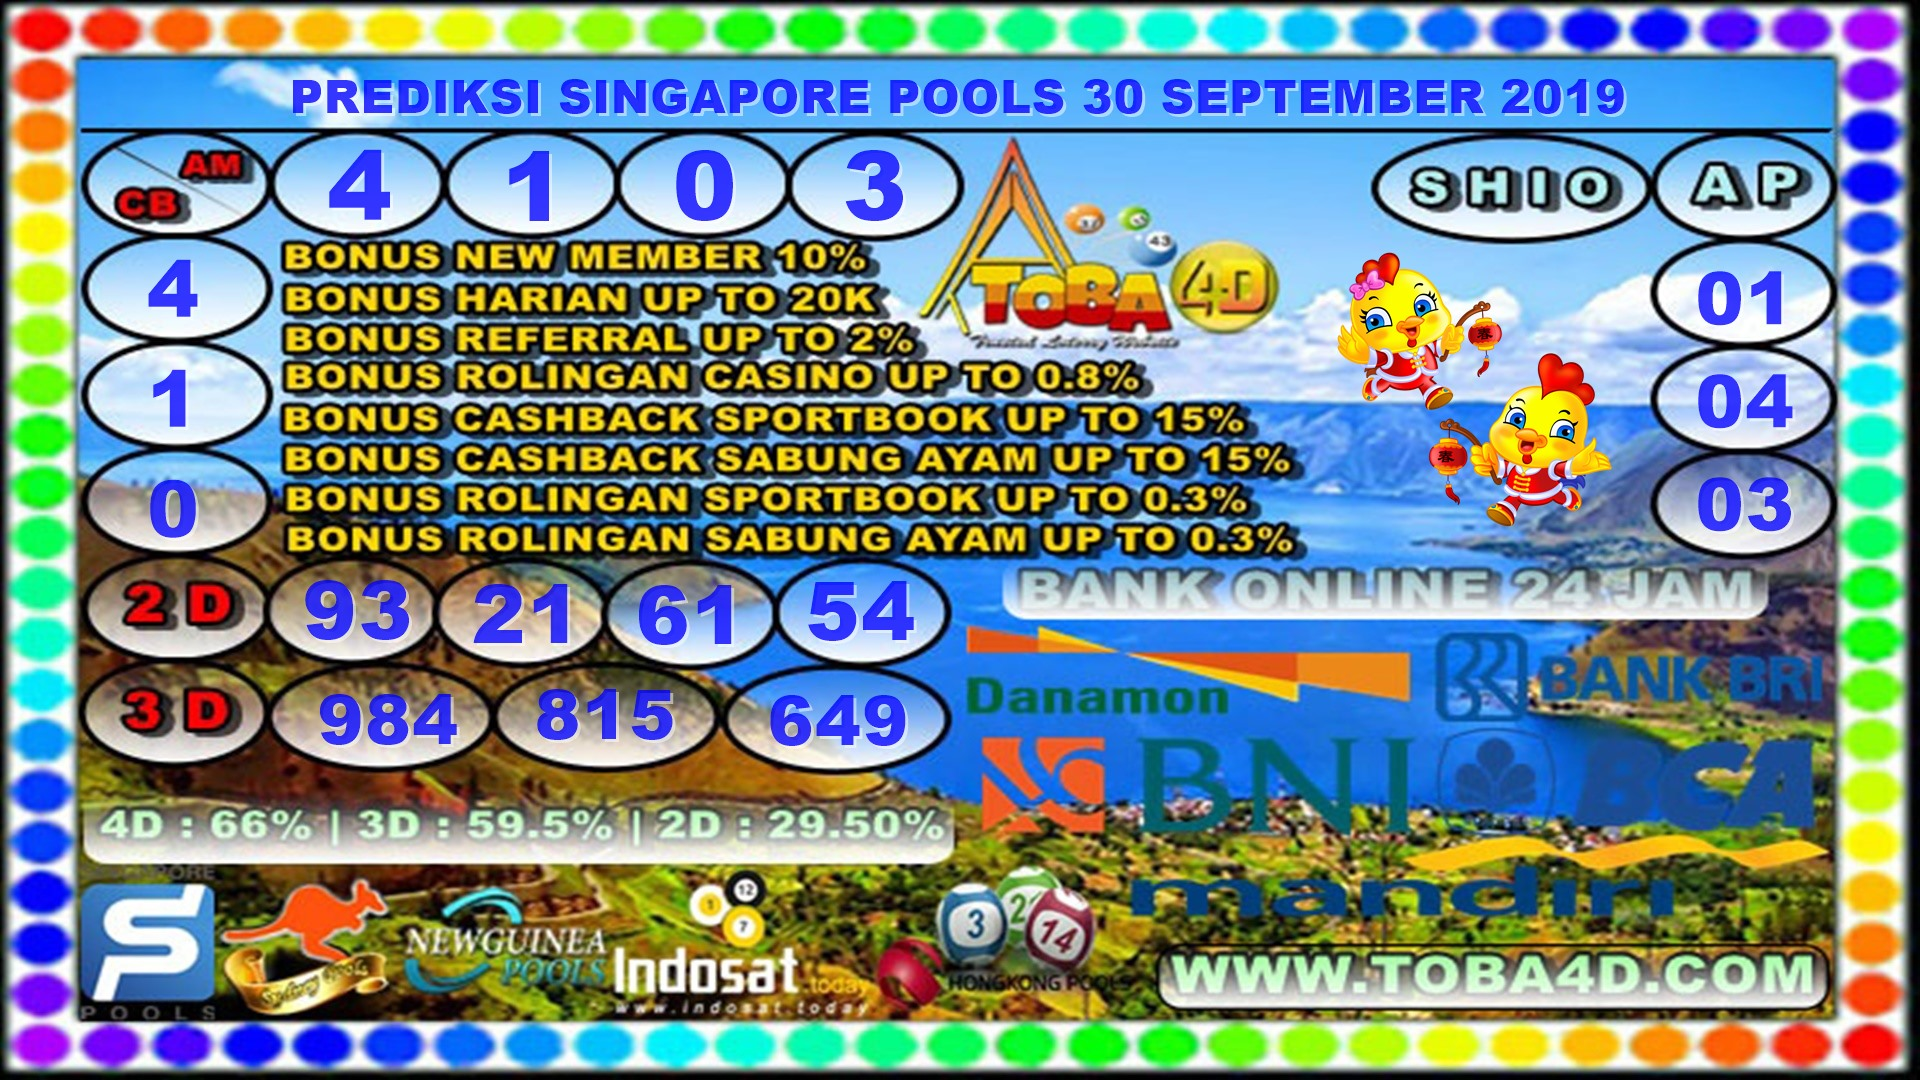 PREDIKSI SINGAPORE POOLS 30 SEPTEMBER 2019